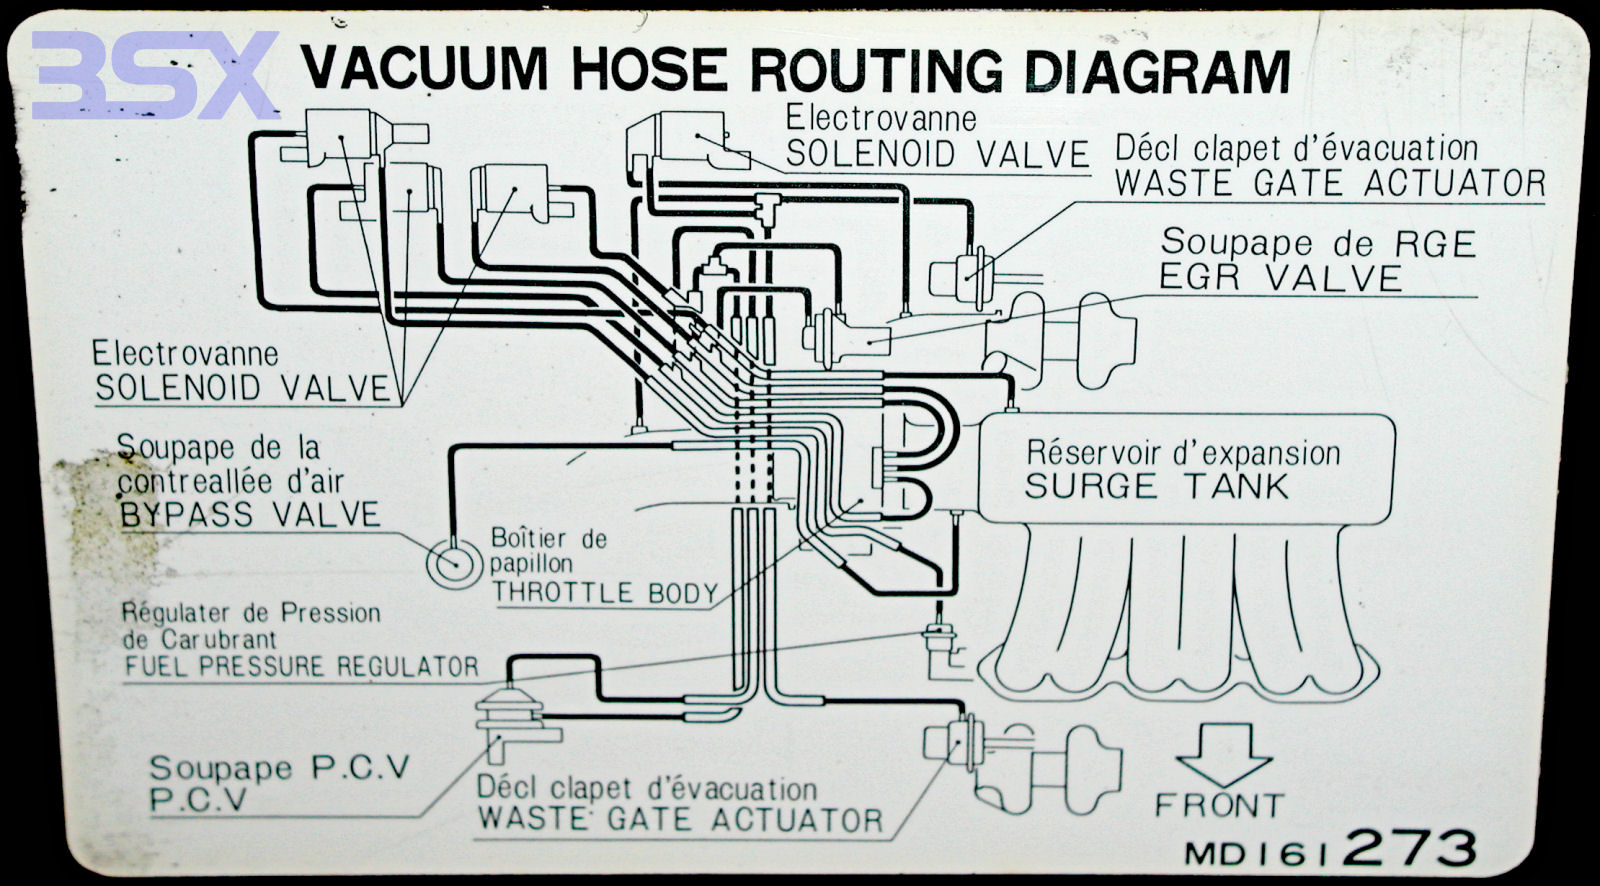 Car Engine Vacuum line basics | Repair | Leak leaks on 258 engine diagram, low voltage lighting wiring diagram, s10 vacuum line diagram, 1978 trans am vacuum diagram, vacuum packing, vacuum motor diagram, vacuum switch diagram, vacuum circuit breaker, vacuum pump, vacuum assembly diagram, vacuum installation diagram, vacuum system diagram, vacuum repair diagram, vacuum relay diagram, pressure tank plumbing diagram, vacuum routing diagram, pump diagram, vacuum sensor diagram, 1983 cj7 vacuum line diagram, vacuum control diagram,